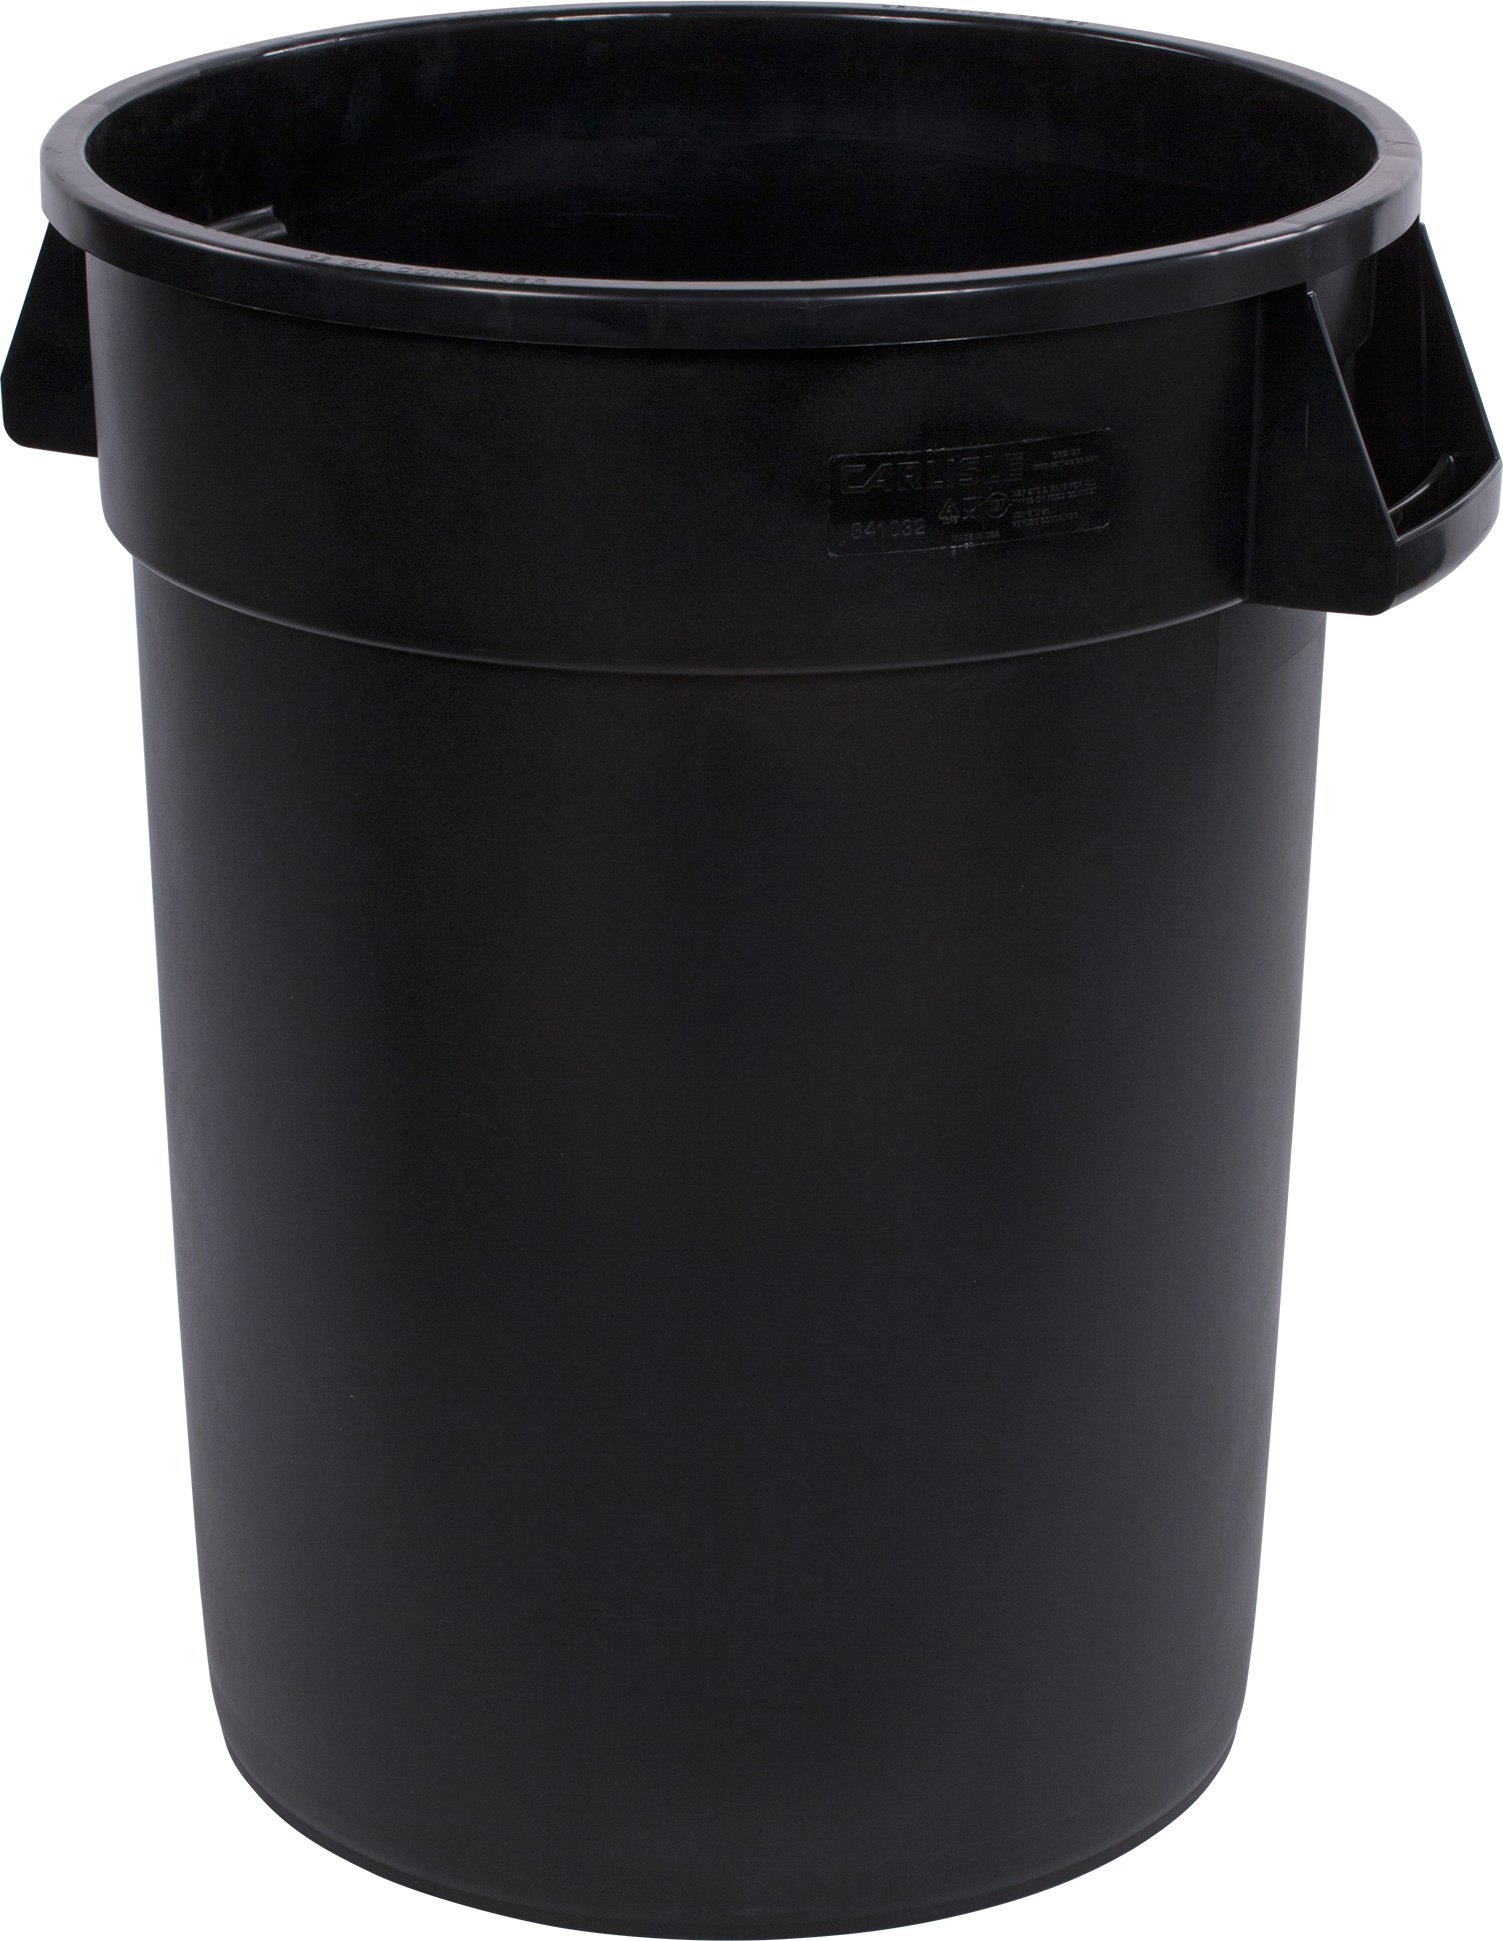 Carlisle 34103203 Bronco Round Waste Container Only, 32 Gallon, Black